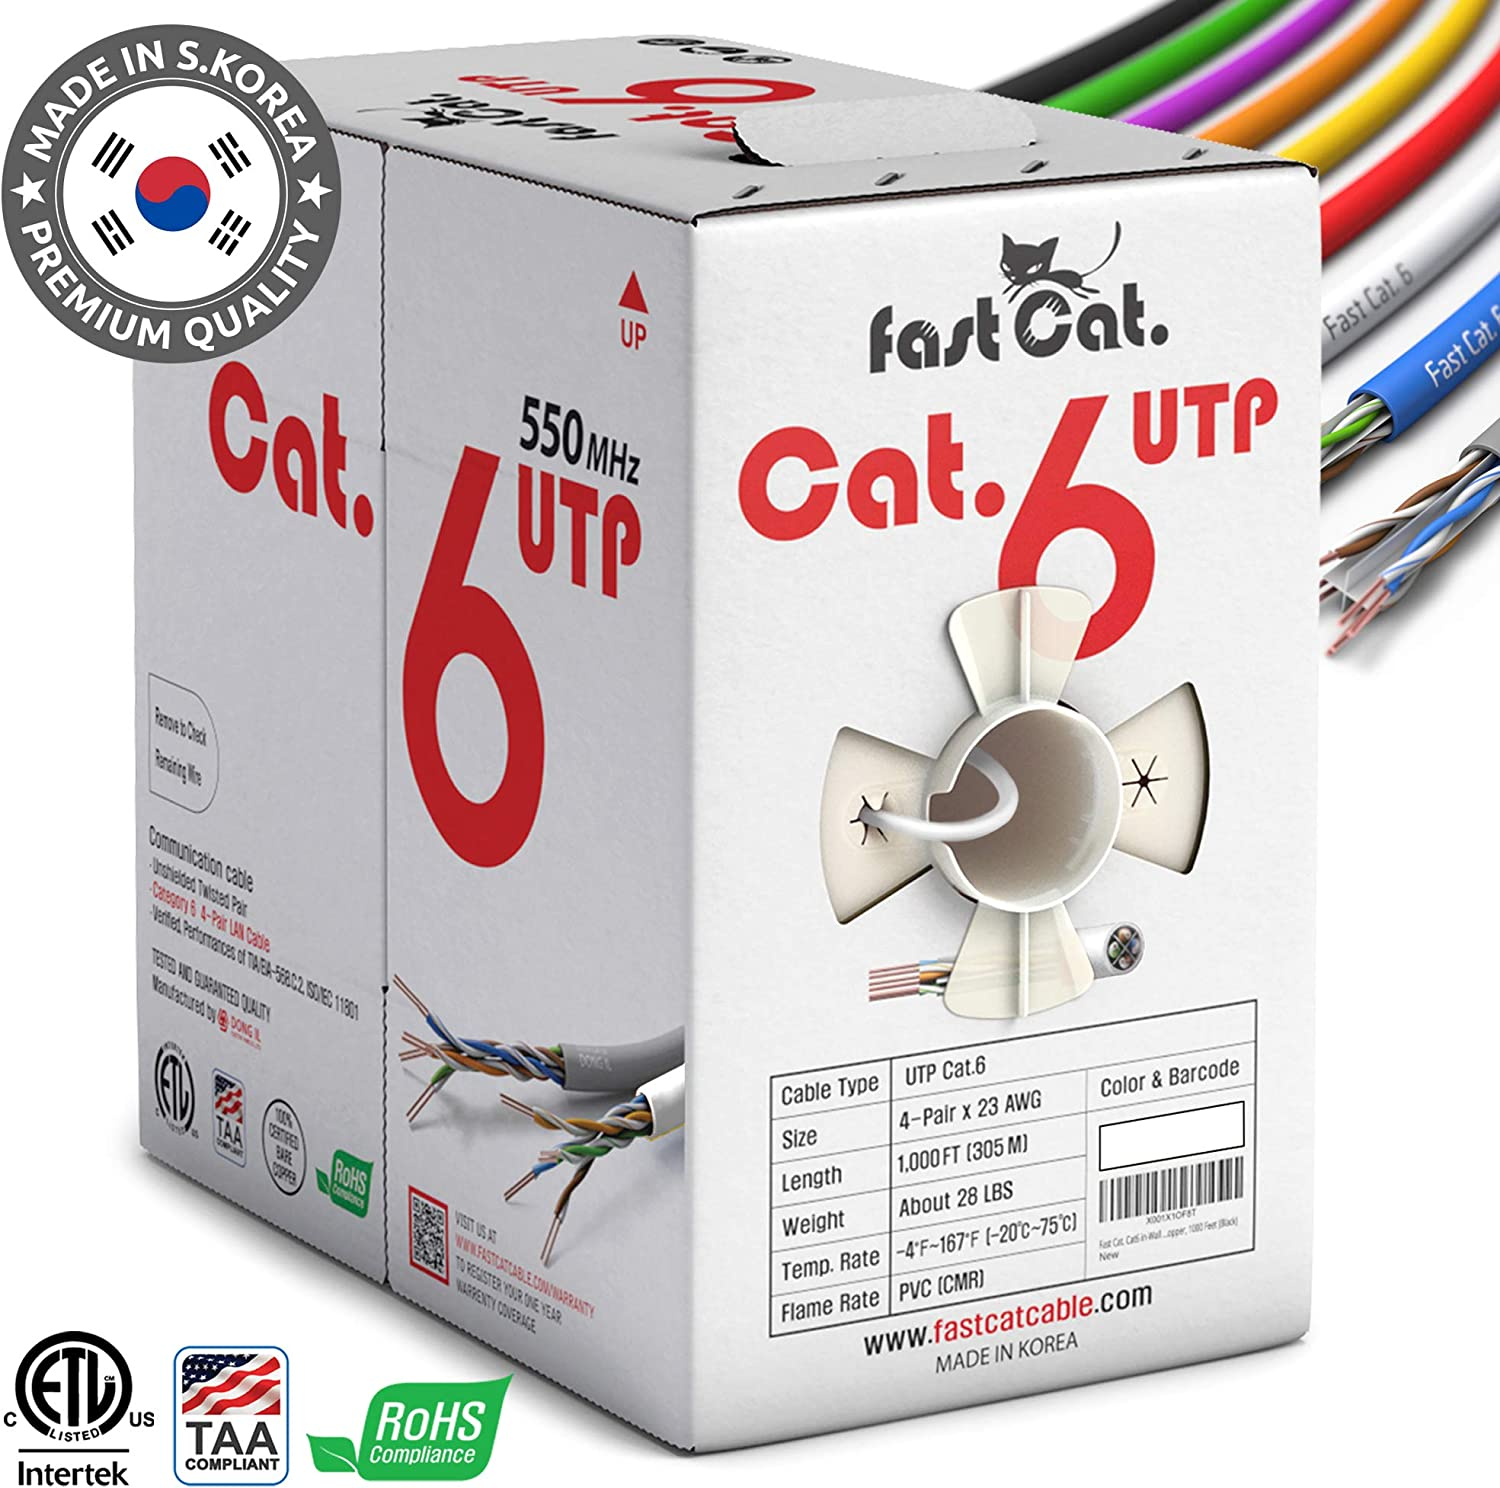 fast Cat. Cat6 Ethernet Cable 1000ft - Insulated Bare Copper Wire Internet Cable with Noise Reducing Cross Separator - 550MHZ / 10 Gigabit Speed UTP LAN Cable 1000 ft - CMR (White)